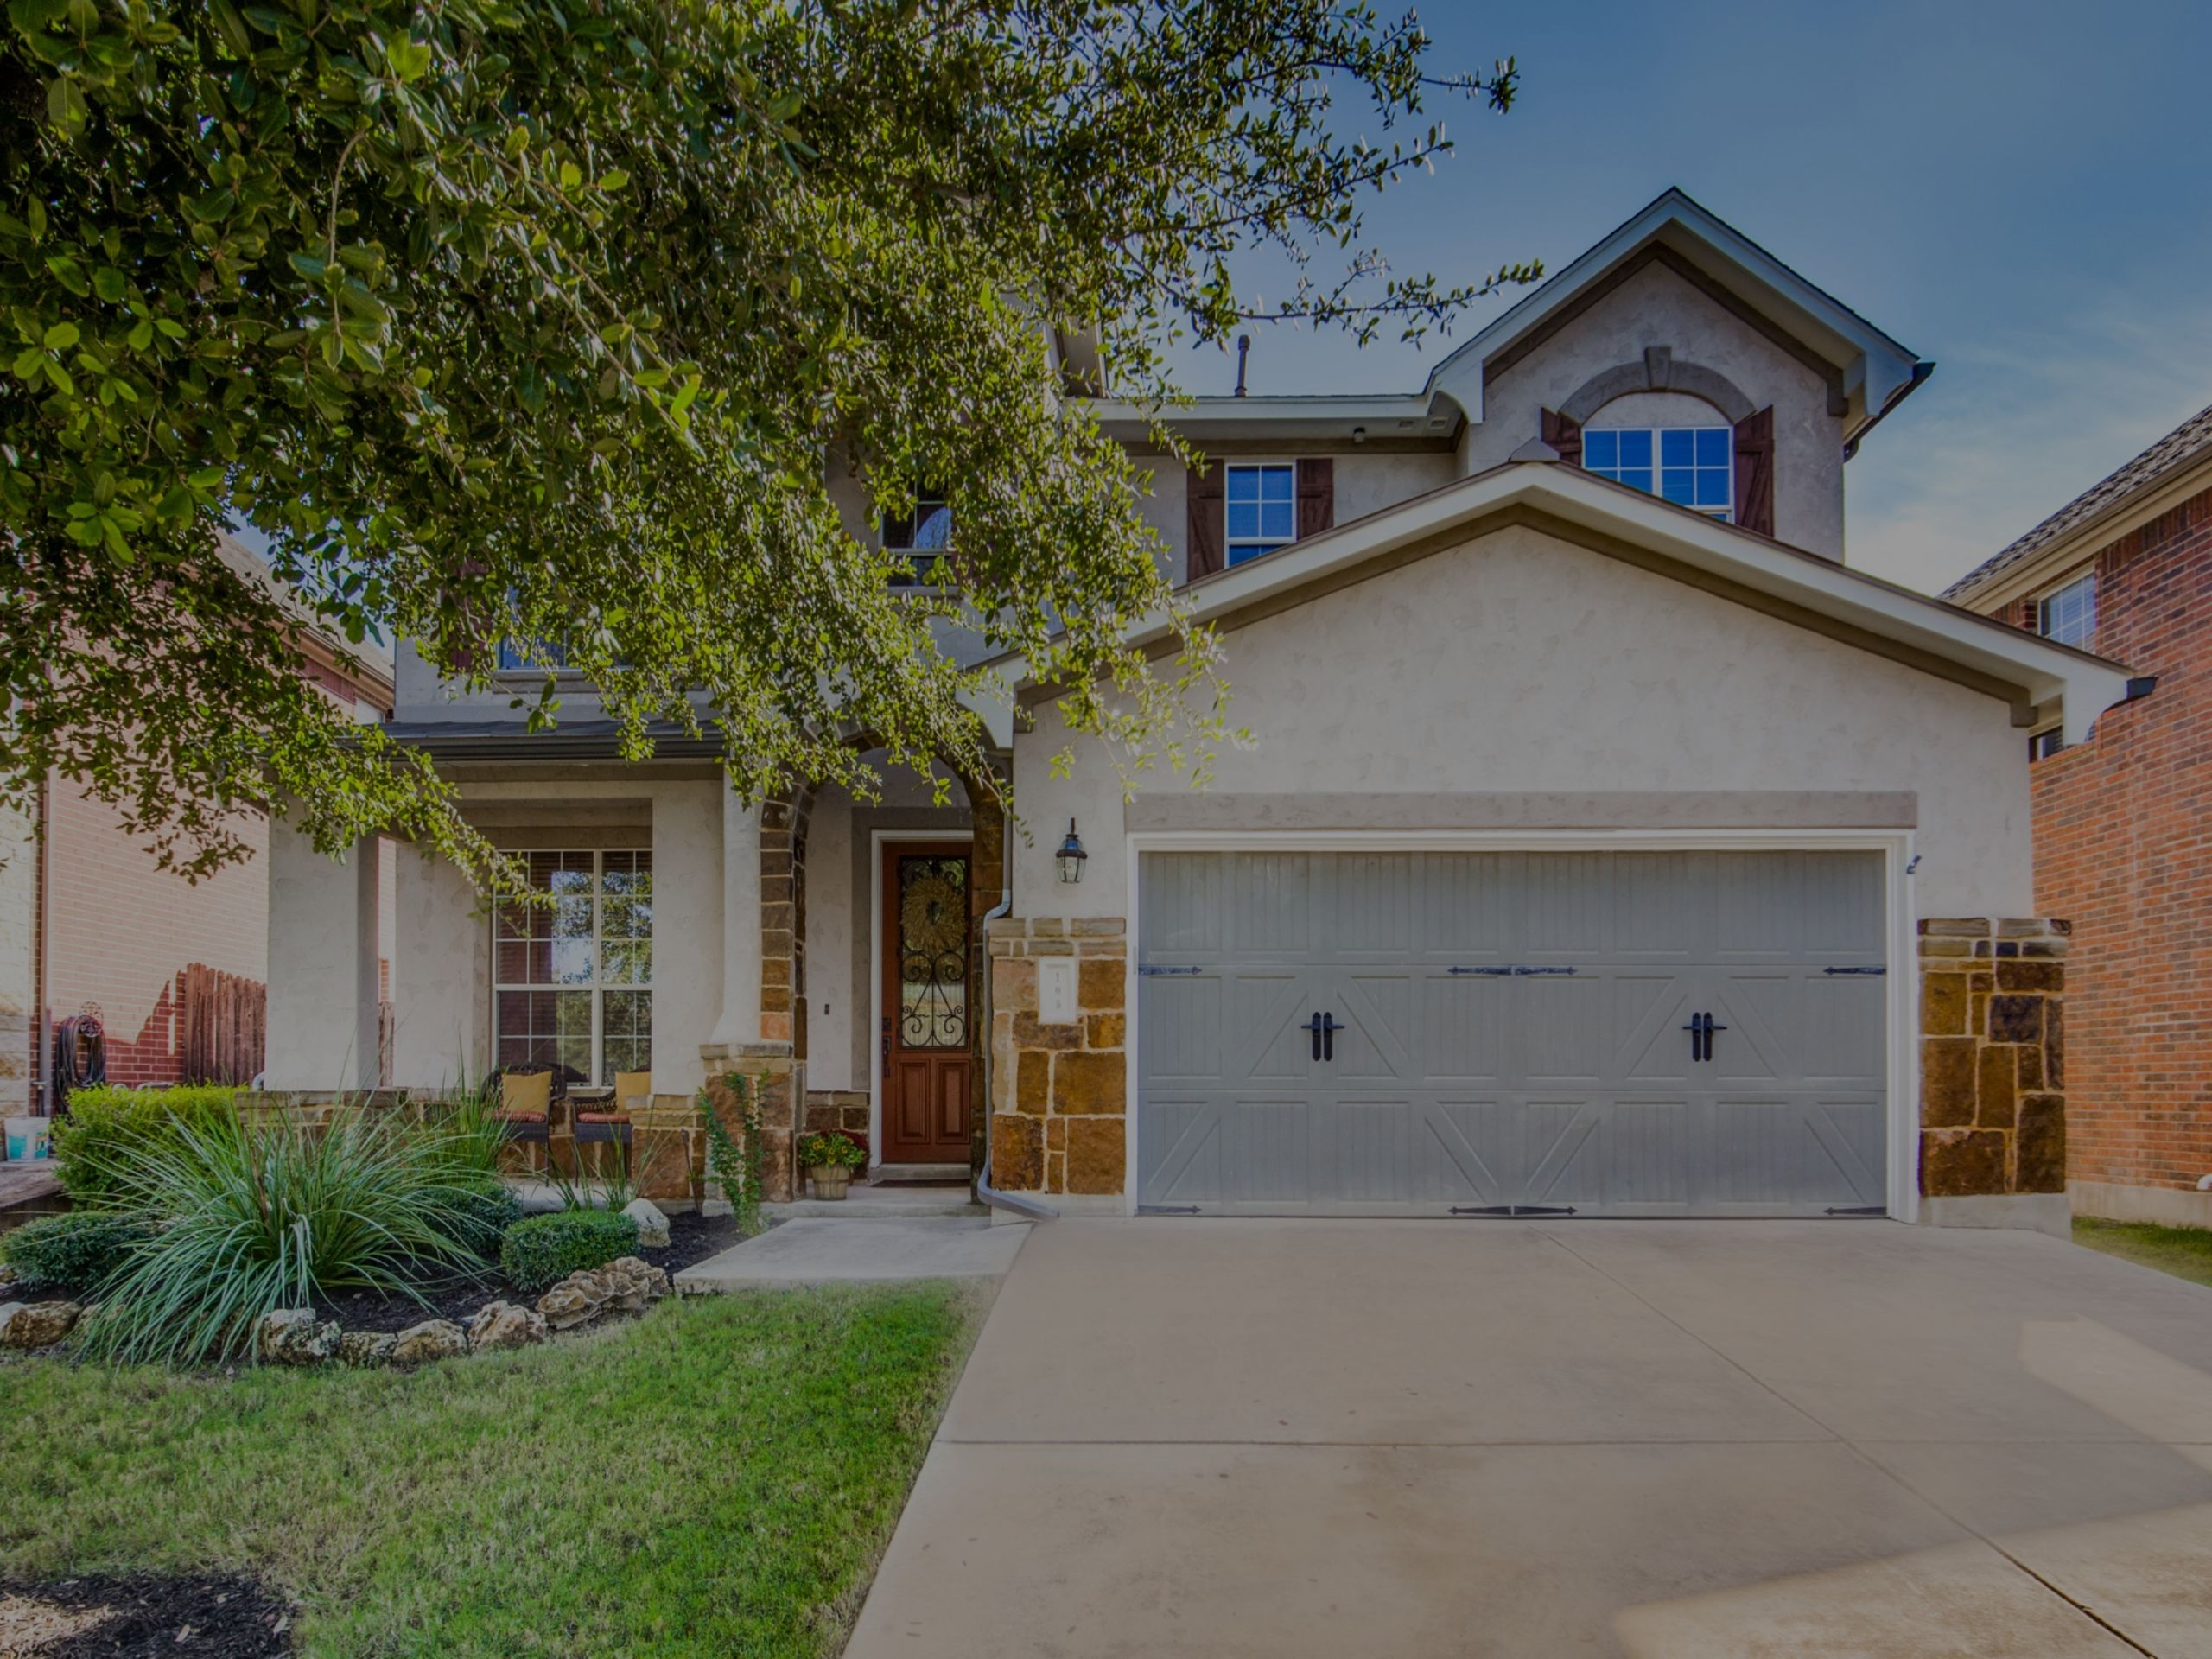 PRICE REDUCED on Darling Greenbelt Home in Herff Ranch